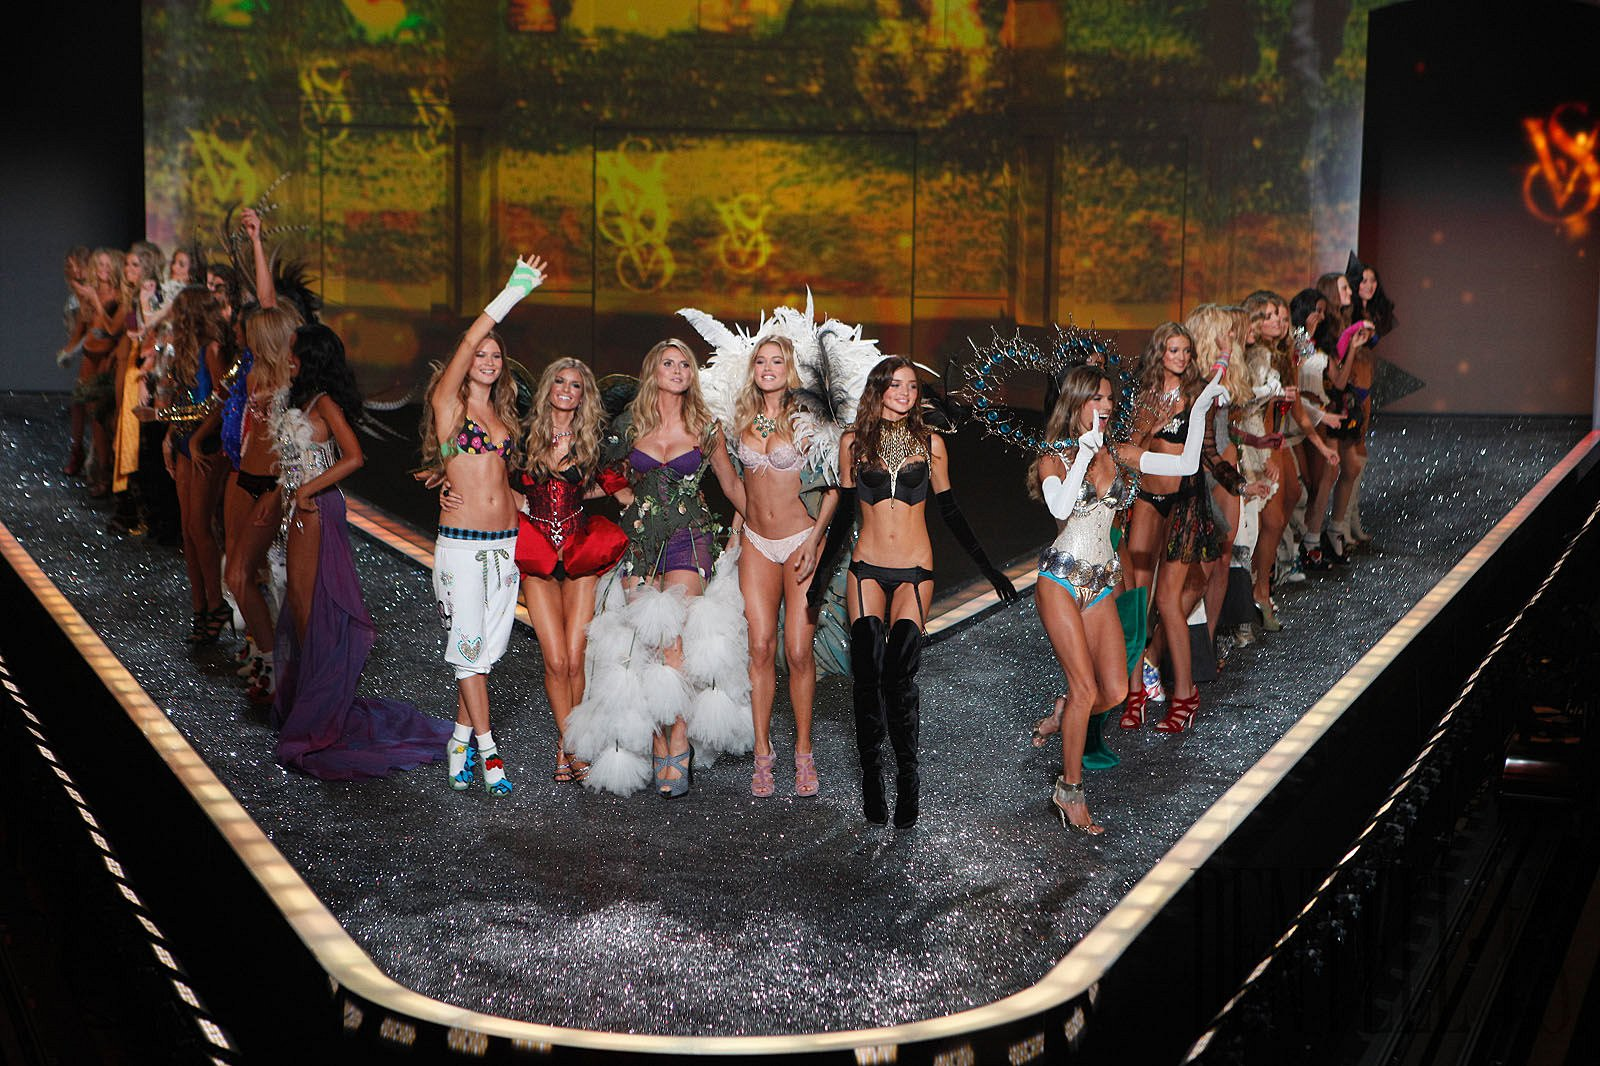 Victoria's secret 2009 fashion show - Lingerie - 1